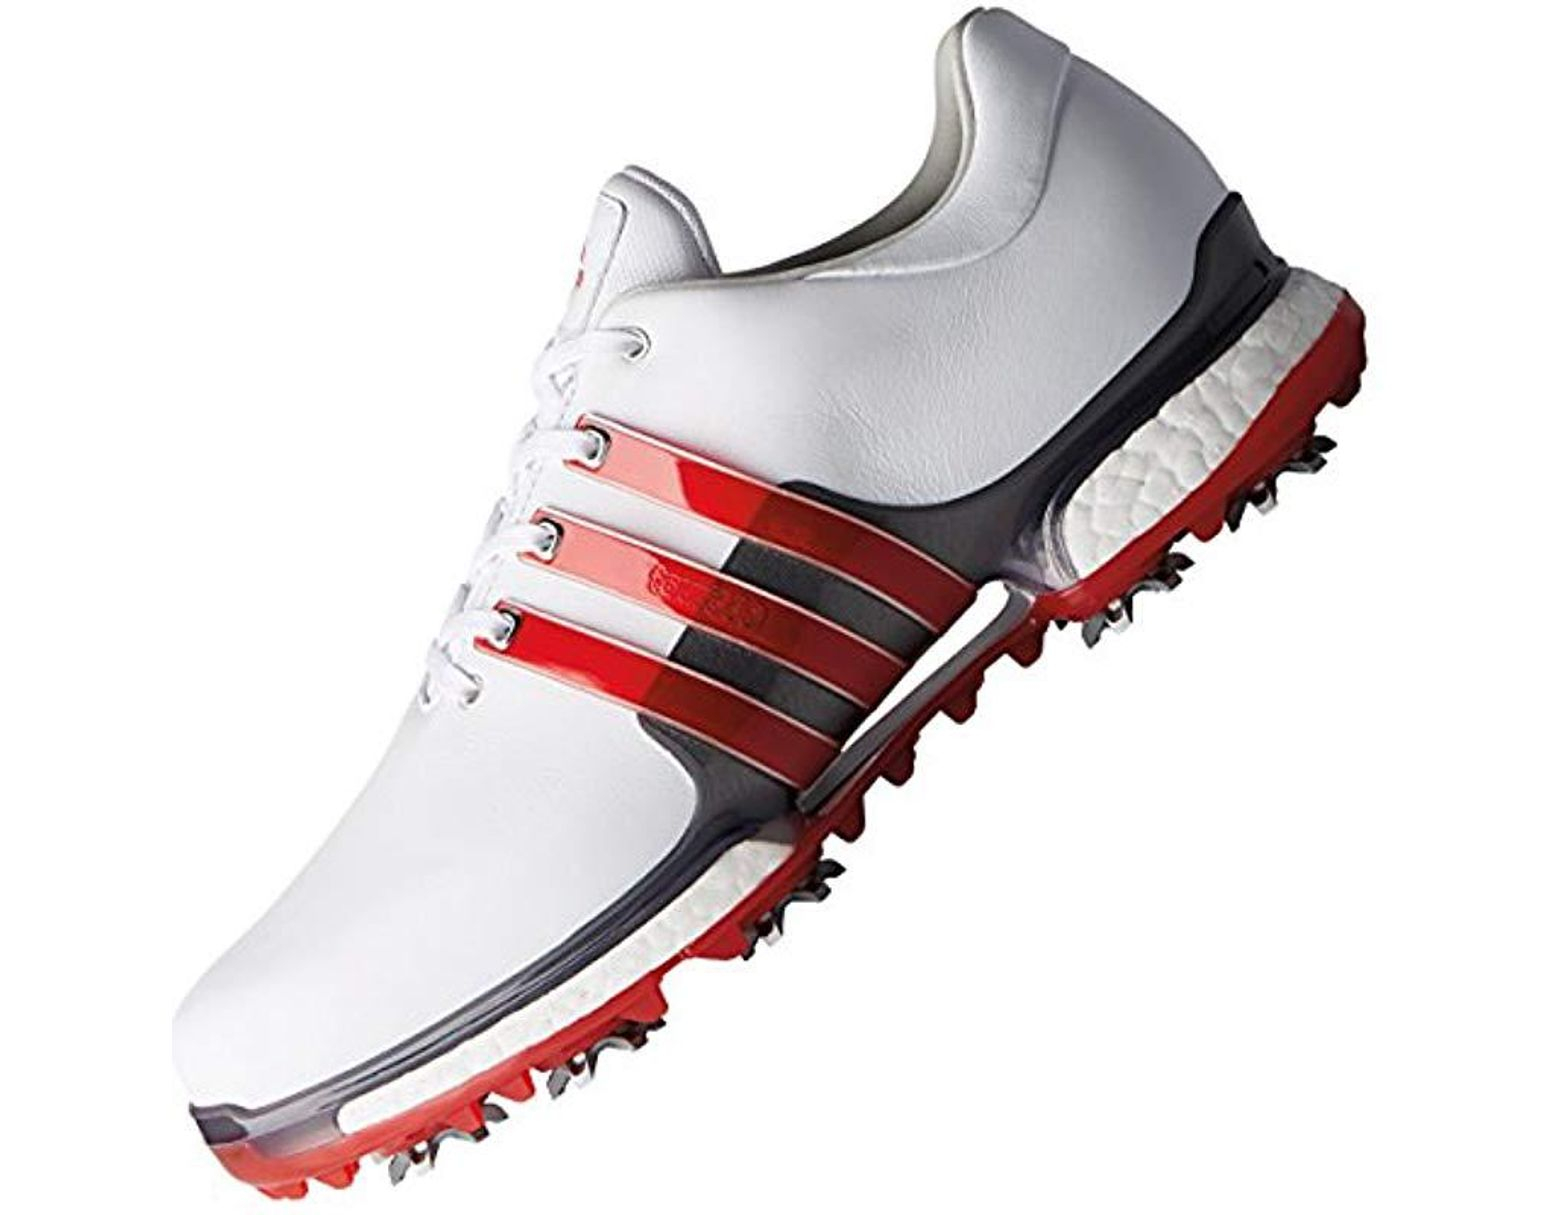 adidas nmd runner red & black shoes, adidas Golf TOUR360